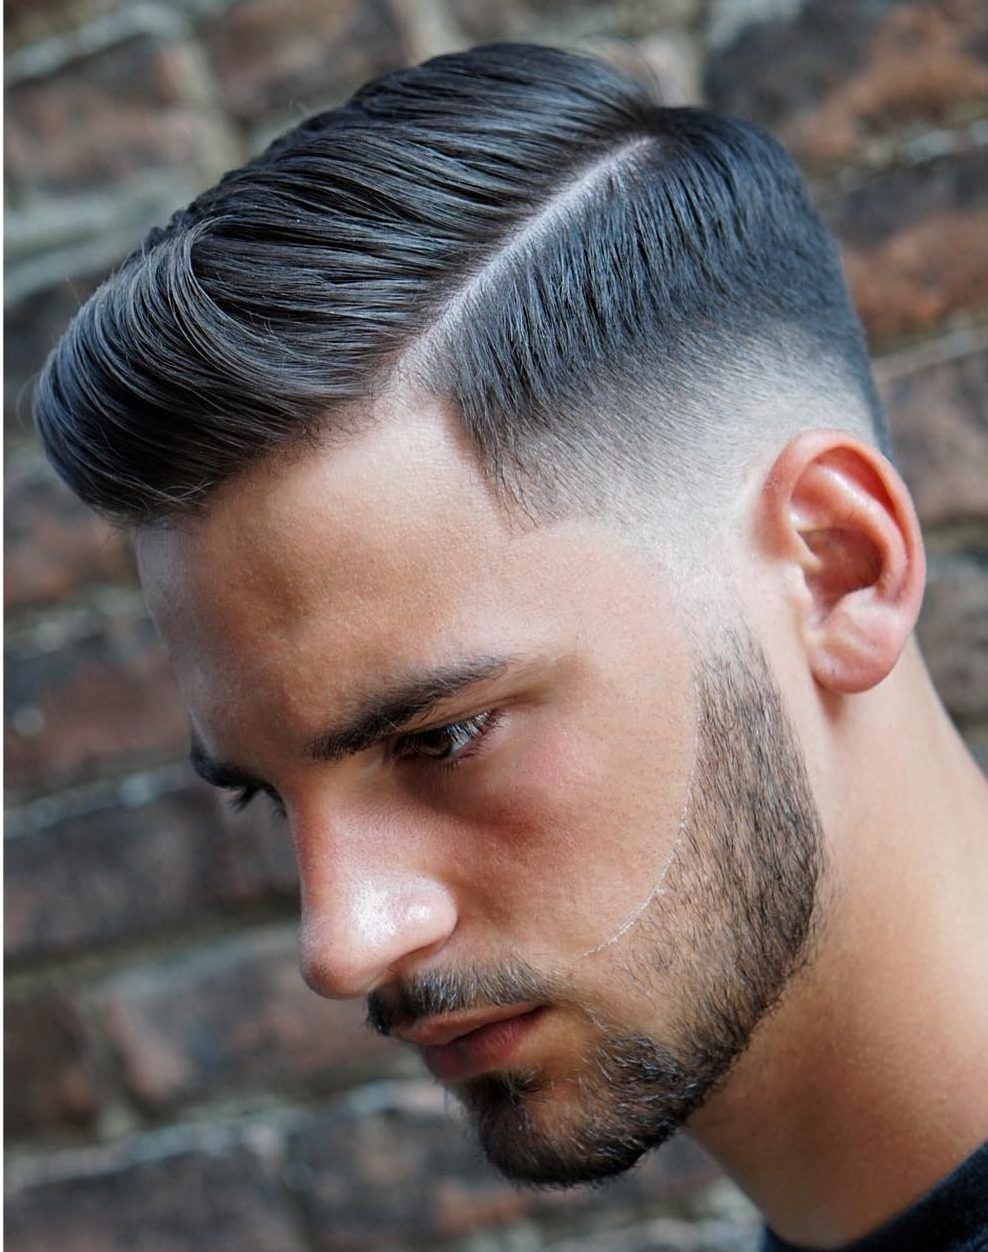 Haircut for men clean cool side part haircuts to get in   menus hairstyle  pinterest